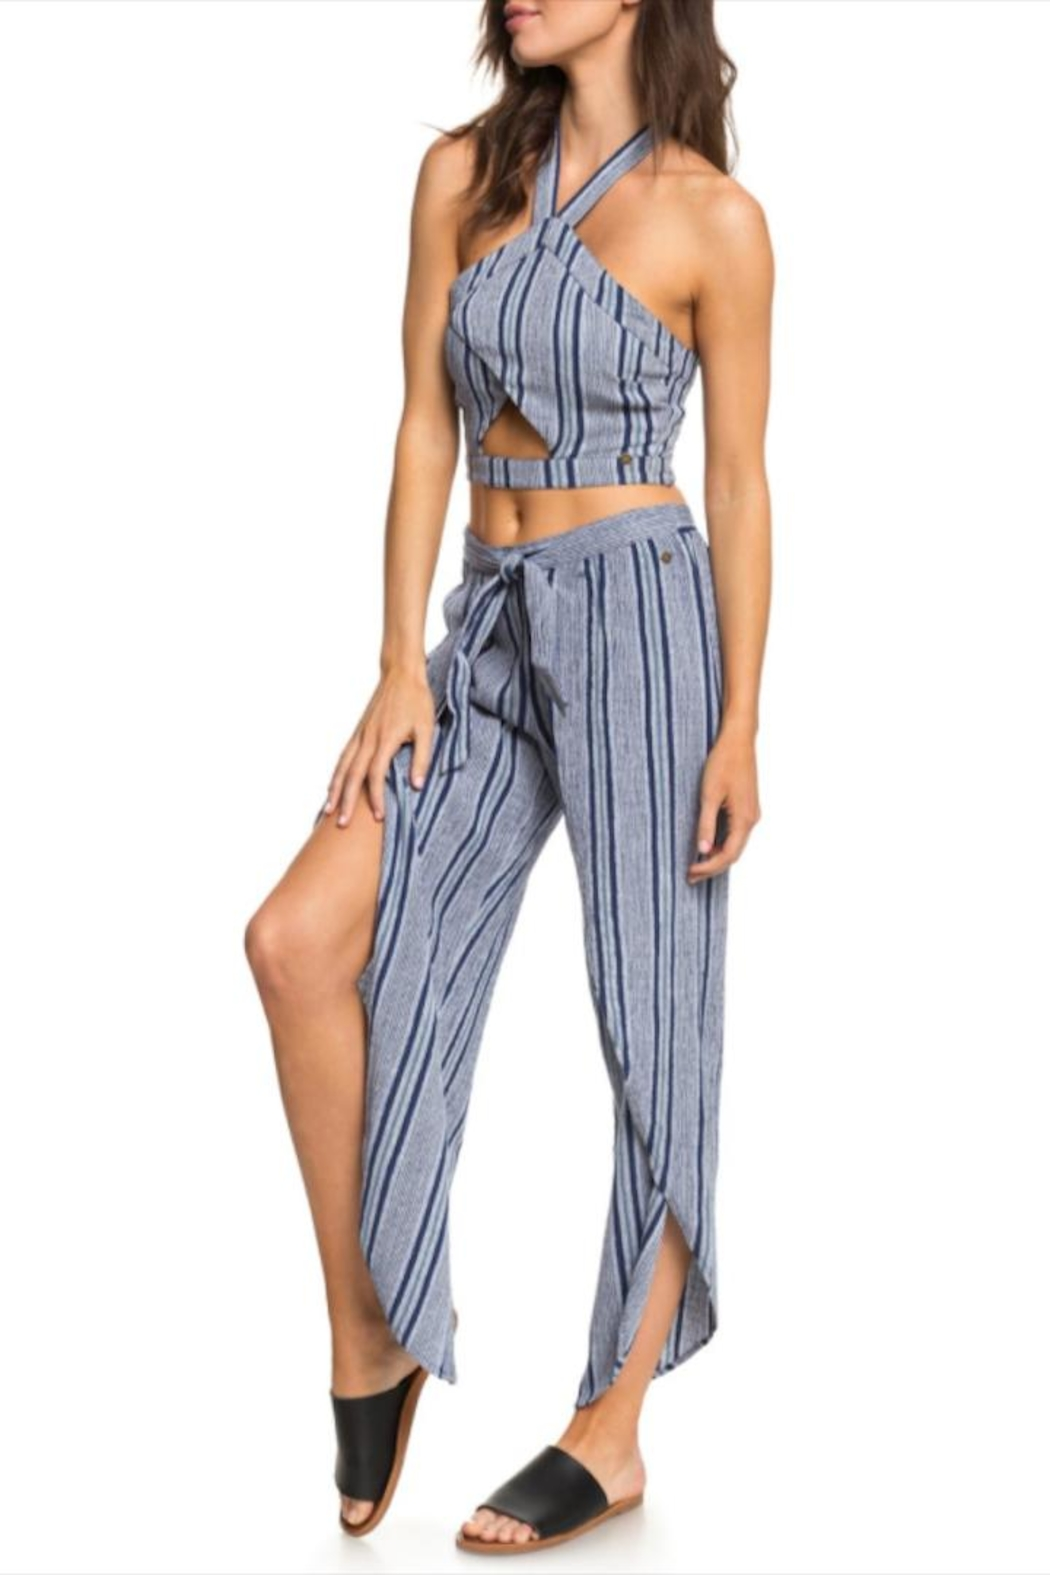 Roxy Striped Faux-Wrap Pants - Front Cropped Image